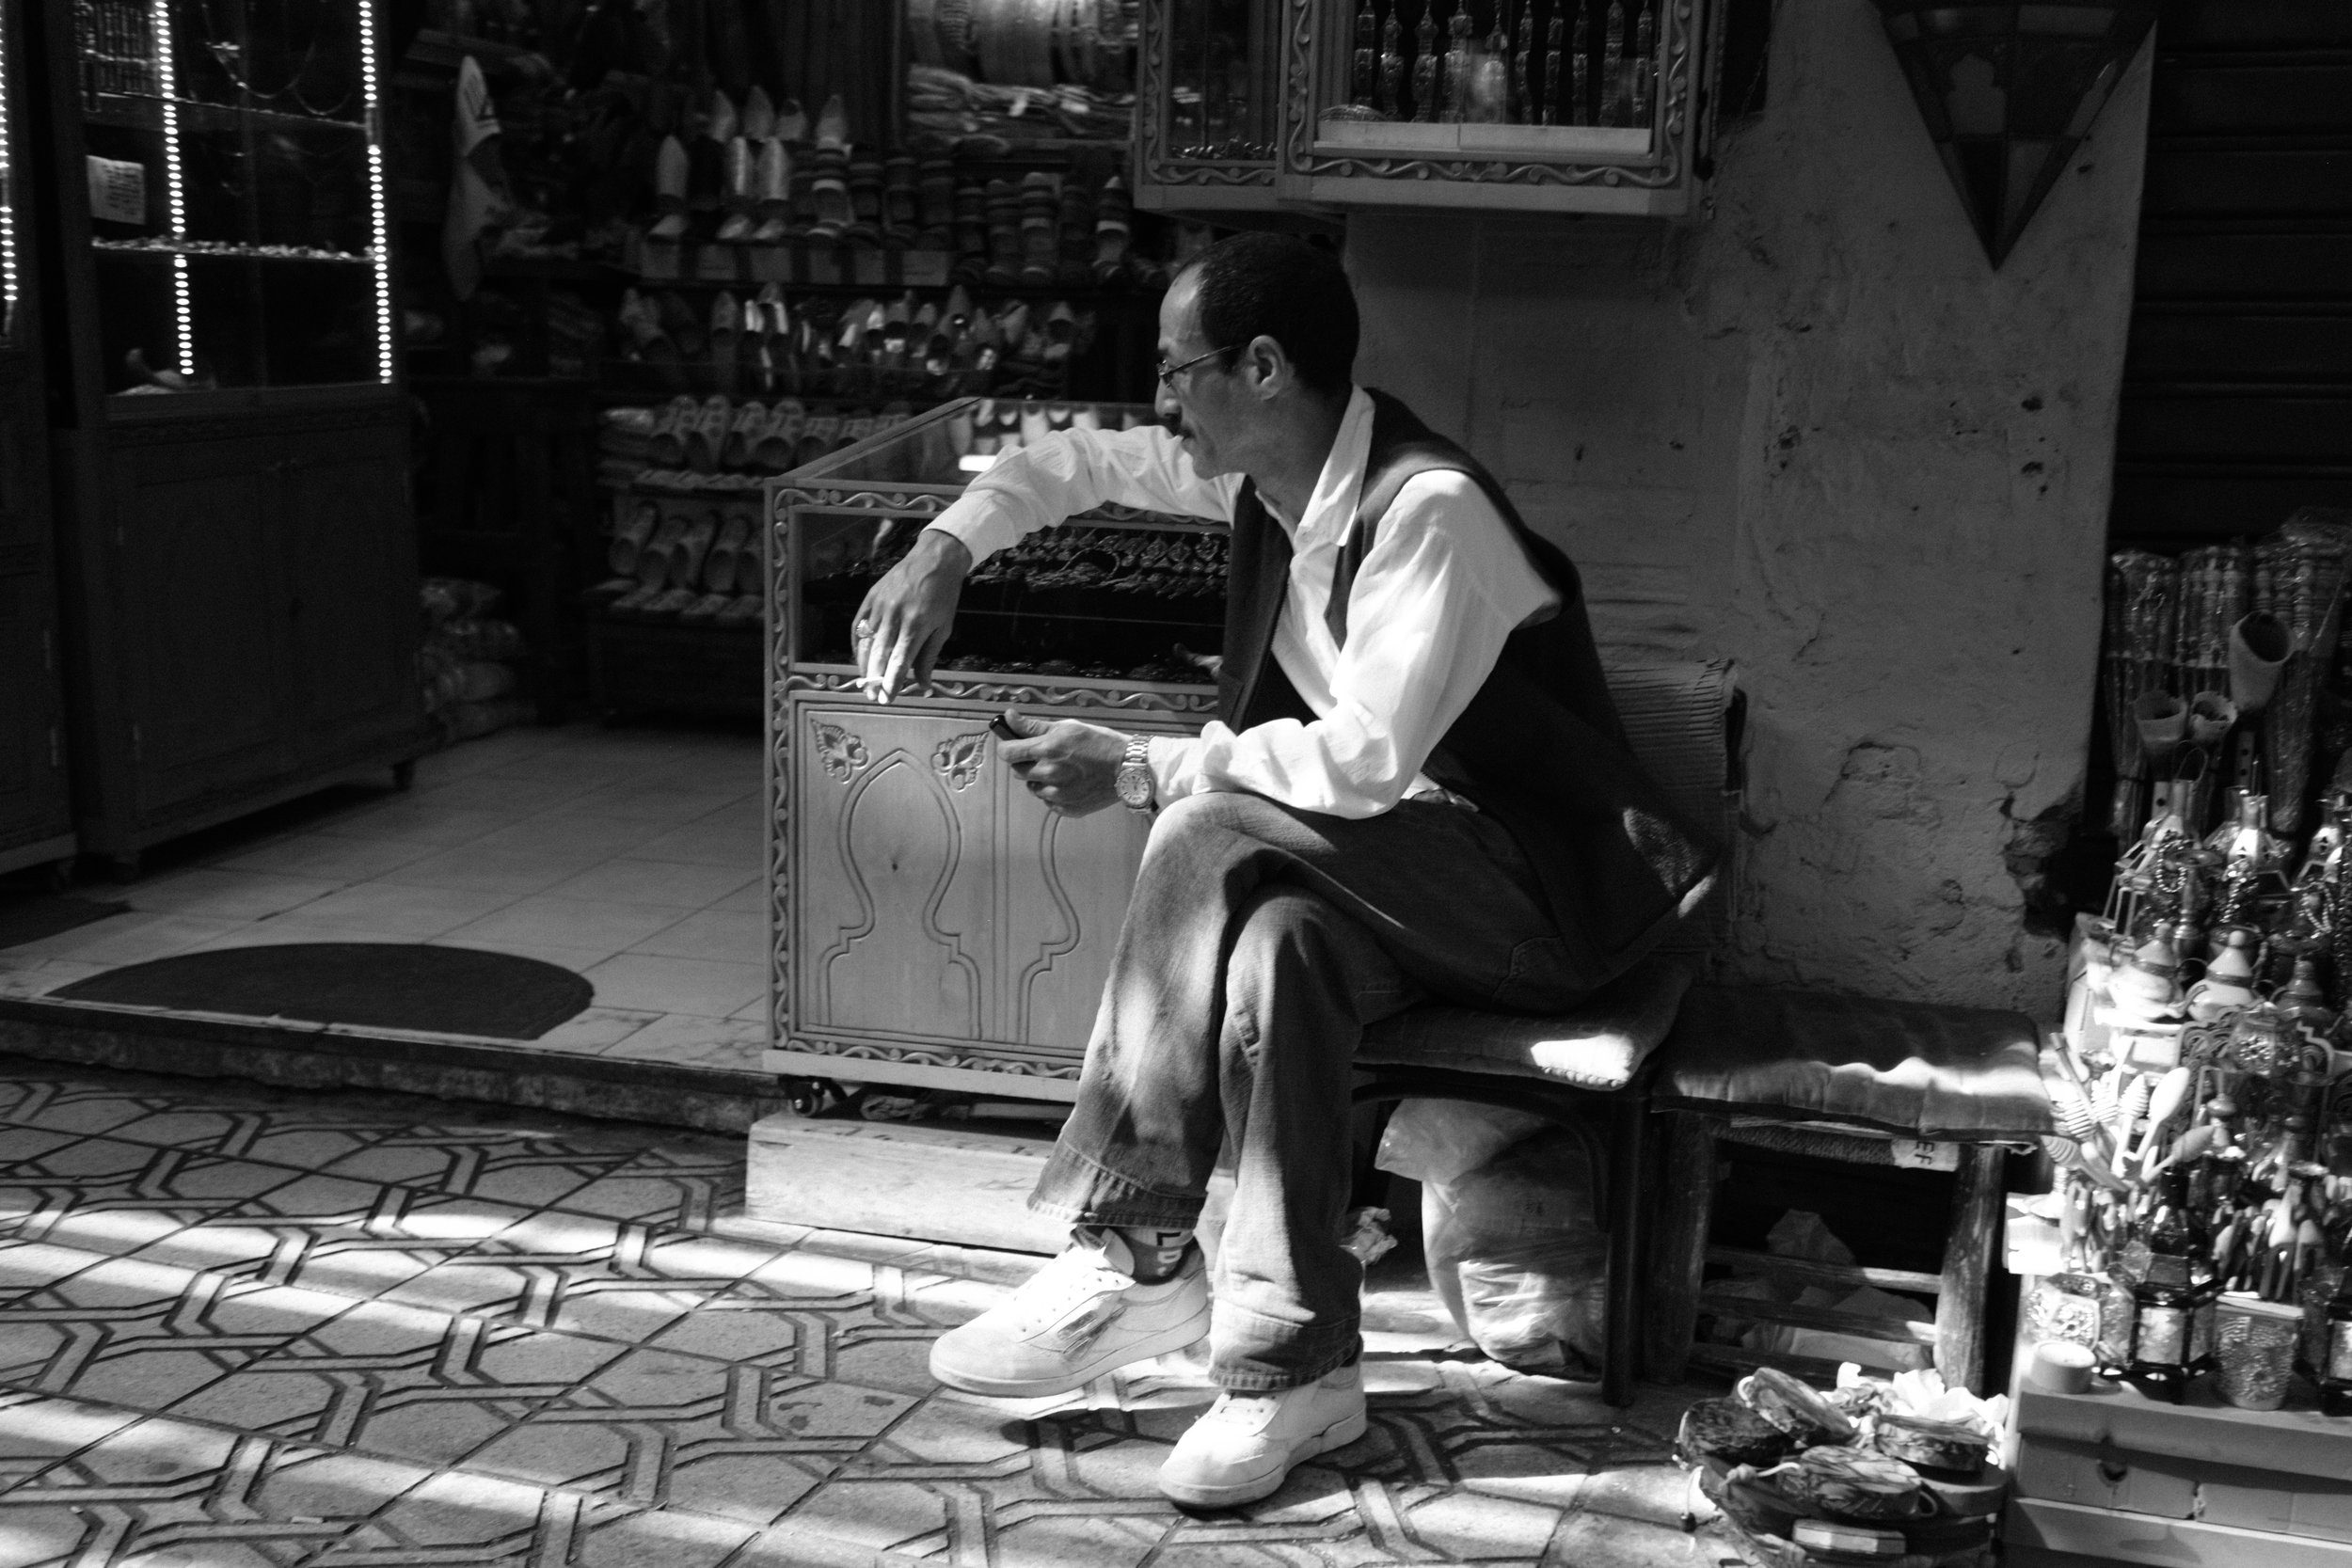 A man tends to his store in a Medina District Souk in Marrakech Morocco